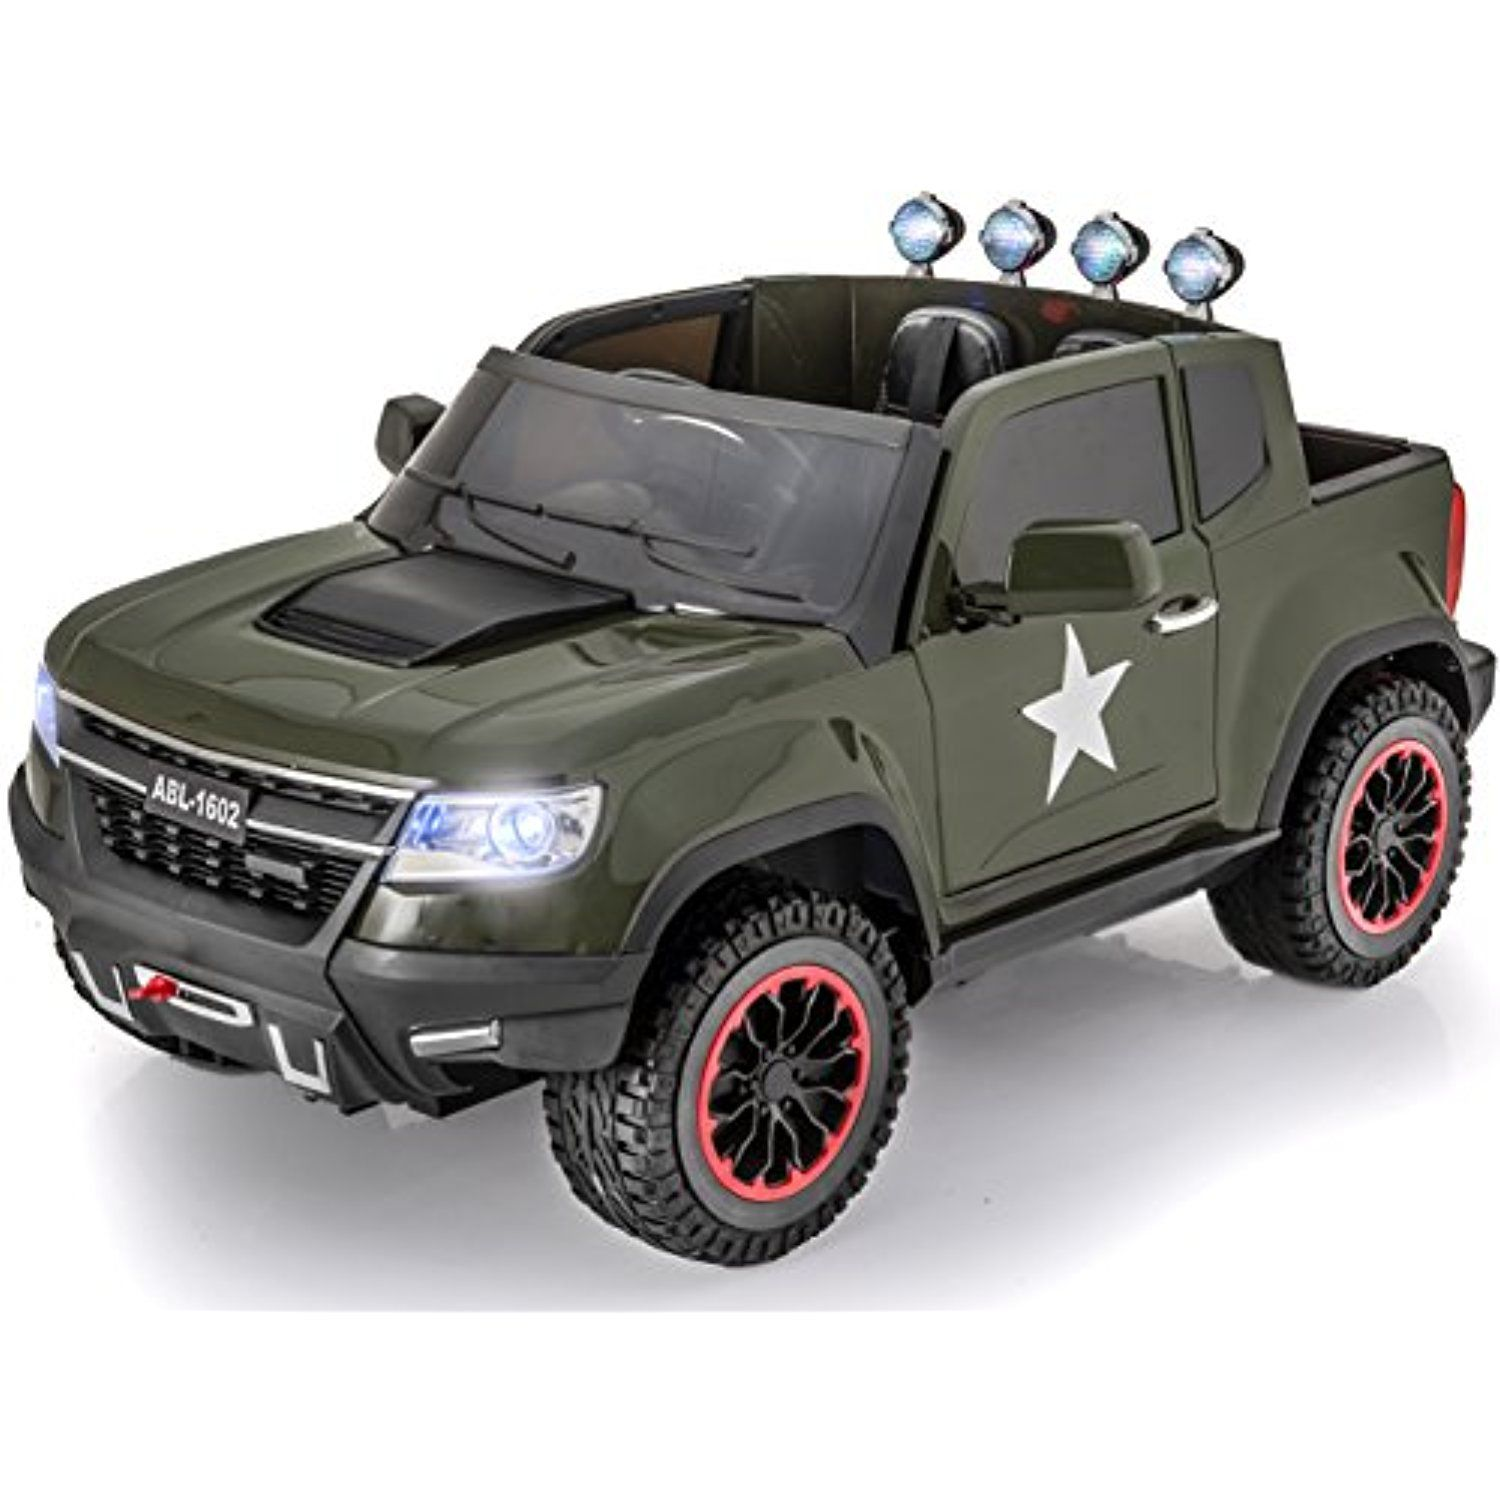 a7cfff67dfe90 Exclusive ARMY Edition 4x4 Big GM Chevy Heavy Duty Style Kids Ride on  Truck